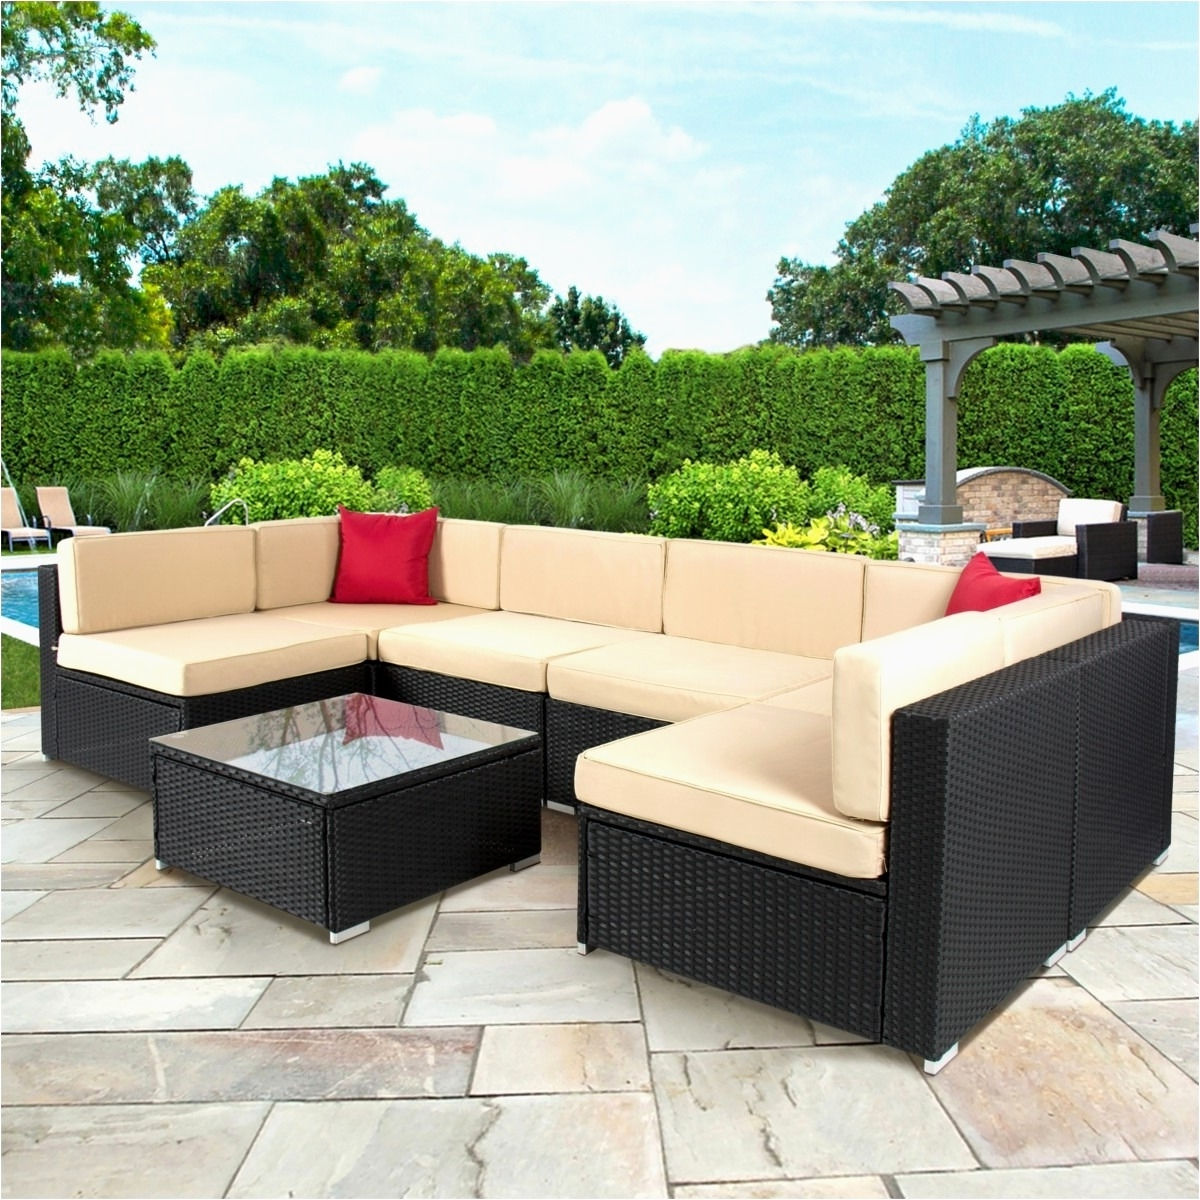 Sams Outdoor Furniture Photo Patio Dining Sets Sams Club Patio Pertaining To Most Popular Patio Conversation Sets At Sam's Club (View 13 of 20)